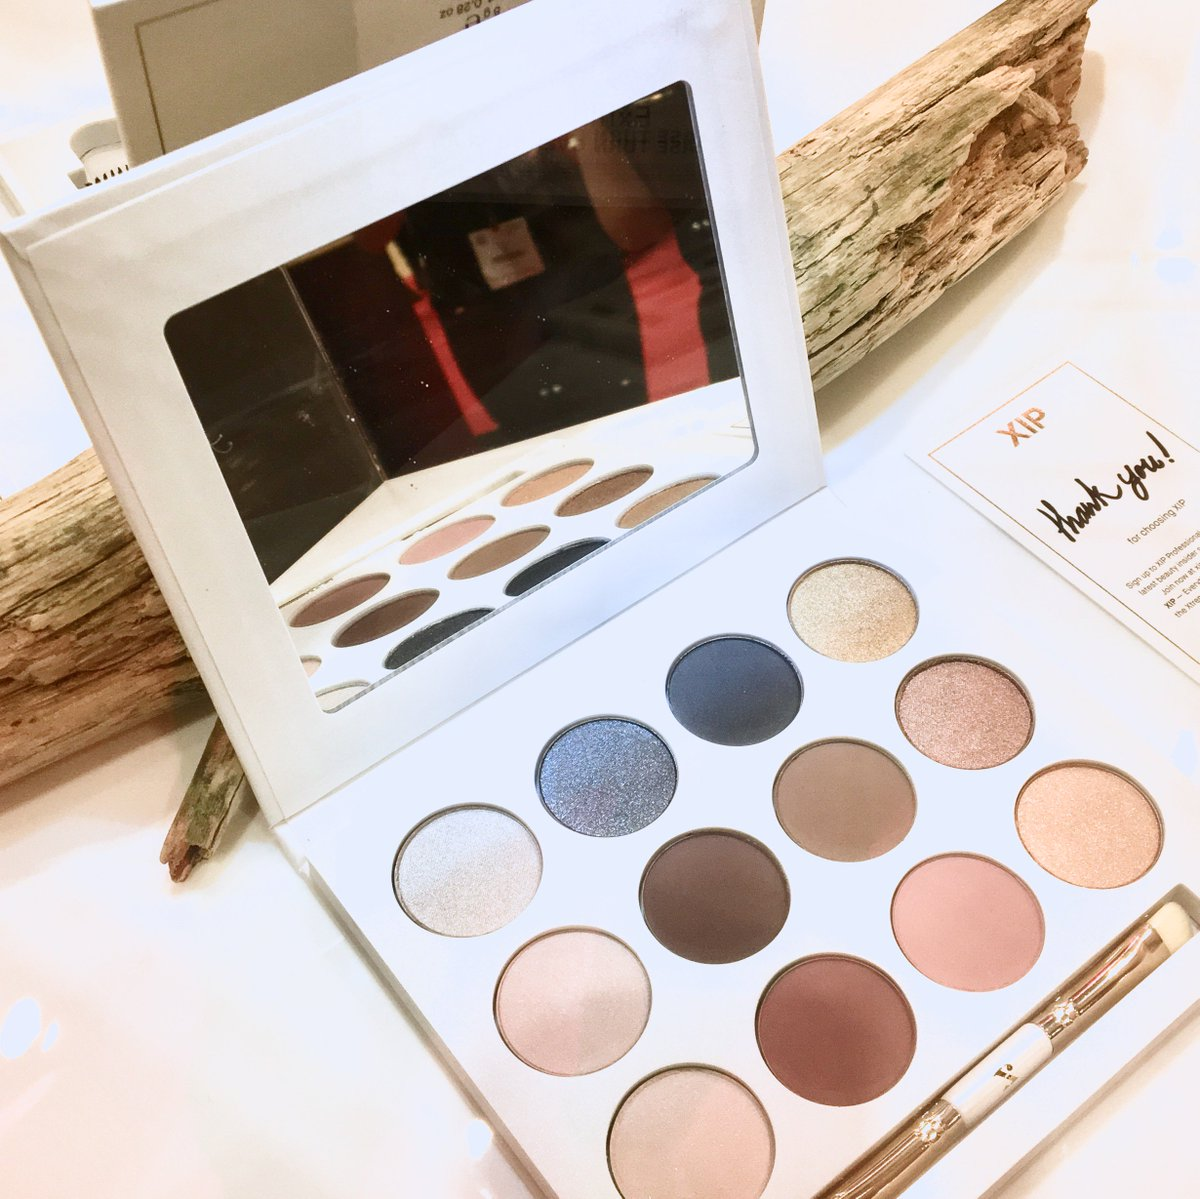 The Platinum Passion Eyeshadow Palette from  http:// xip-professional.com  &nbsp;     #LiveLikeAnXIP   #eyeshadow #makeup #cosmetics #eyes<br>http://pic.twitter.com/VlkG6CzrK8